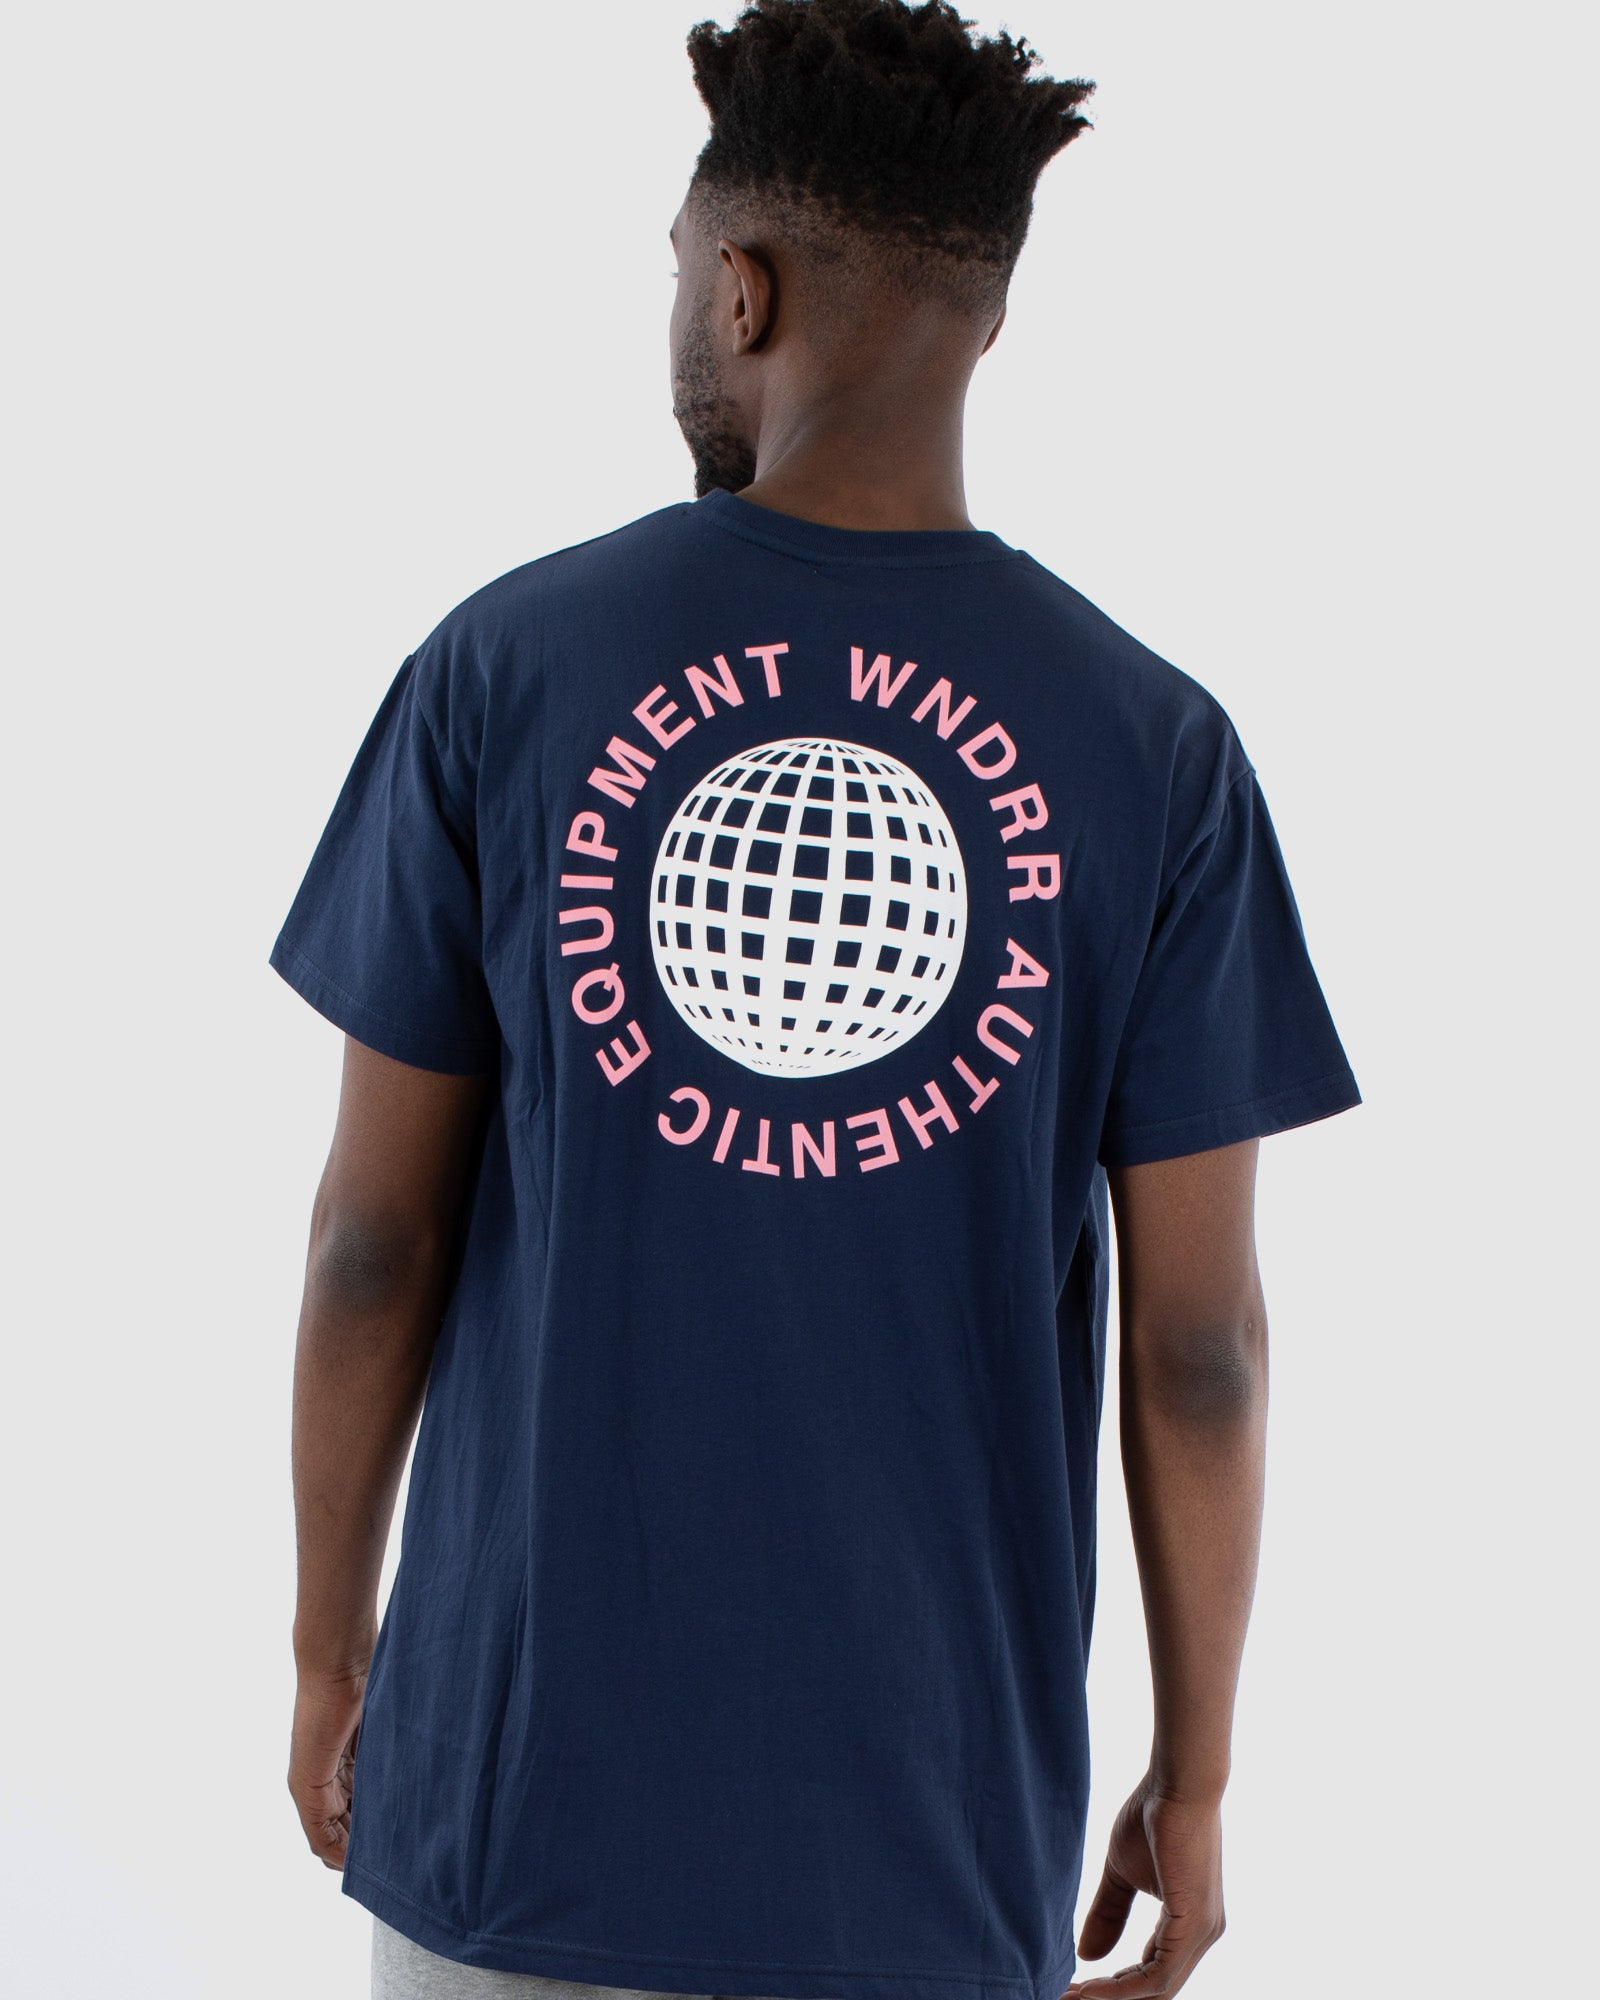 Wndrr Service Custom Fit Tee - Navy